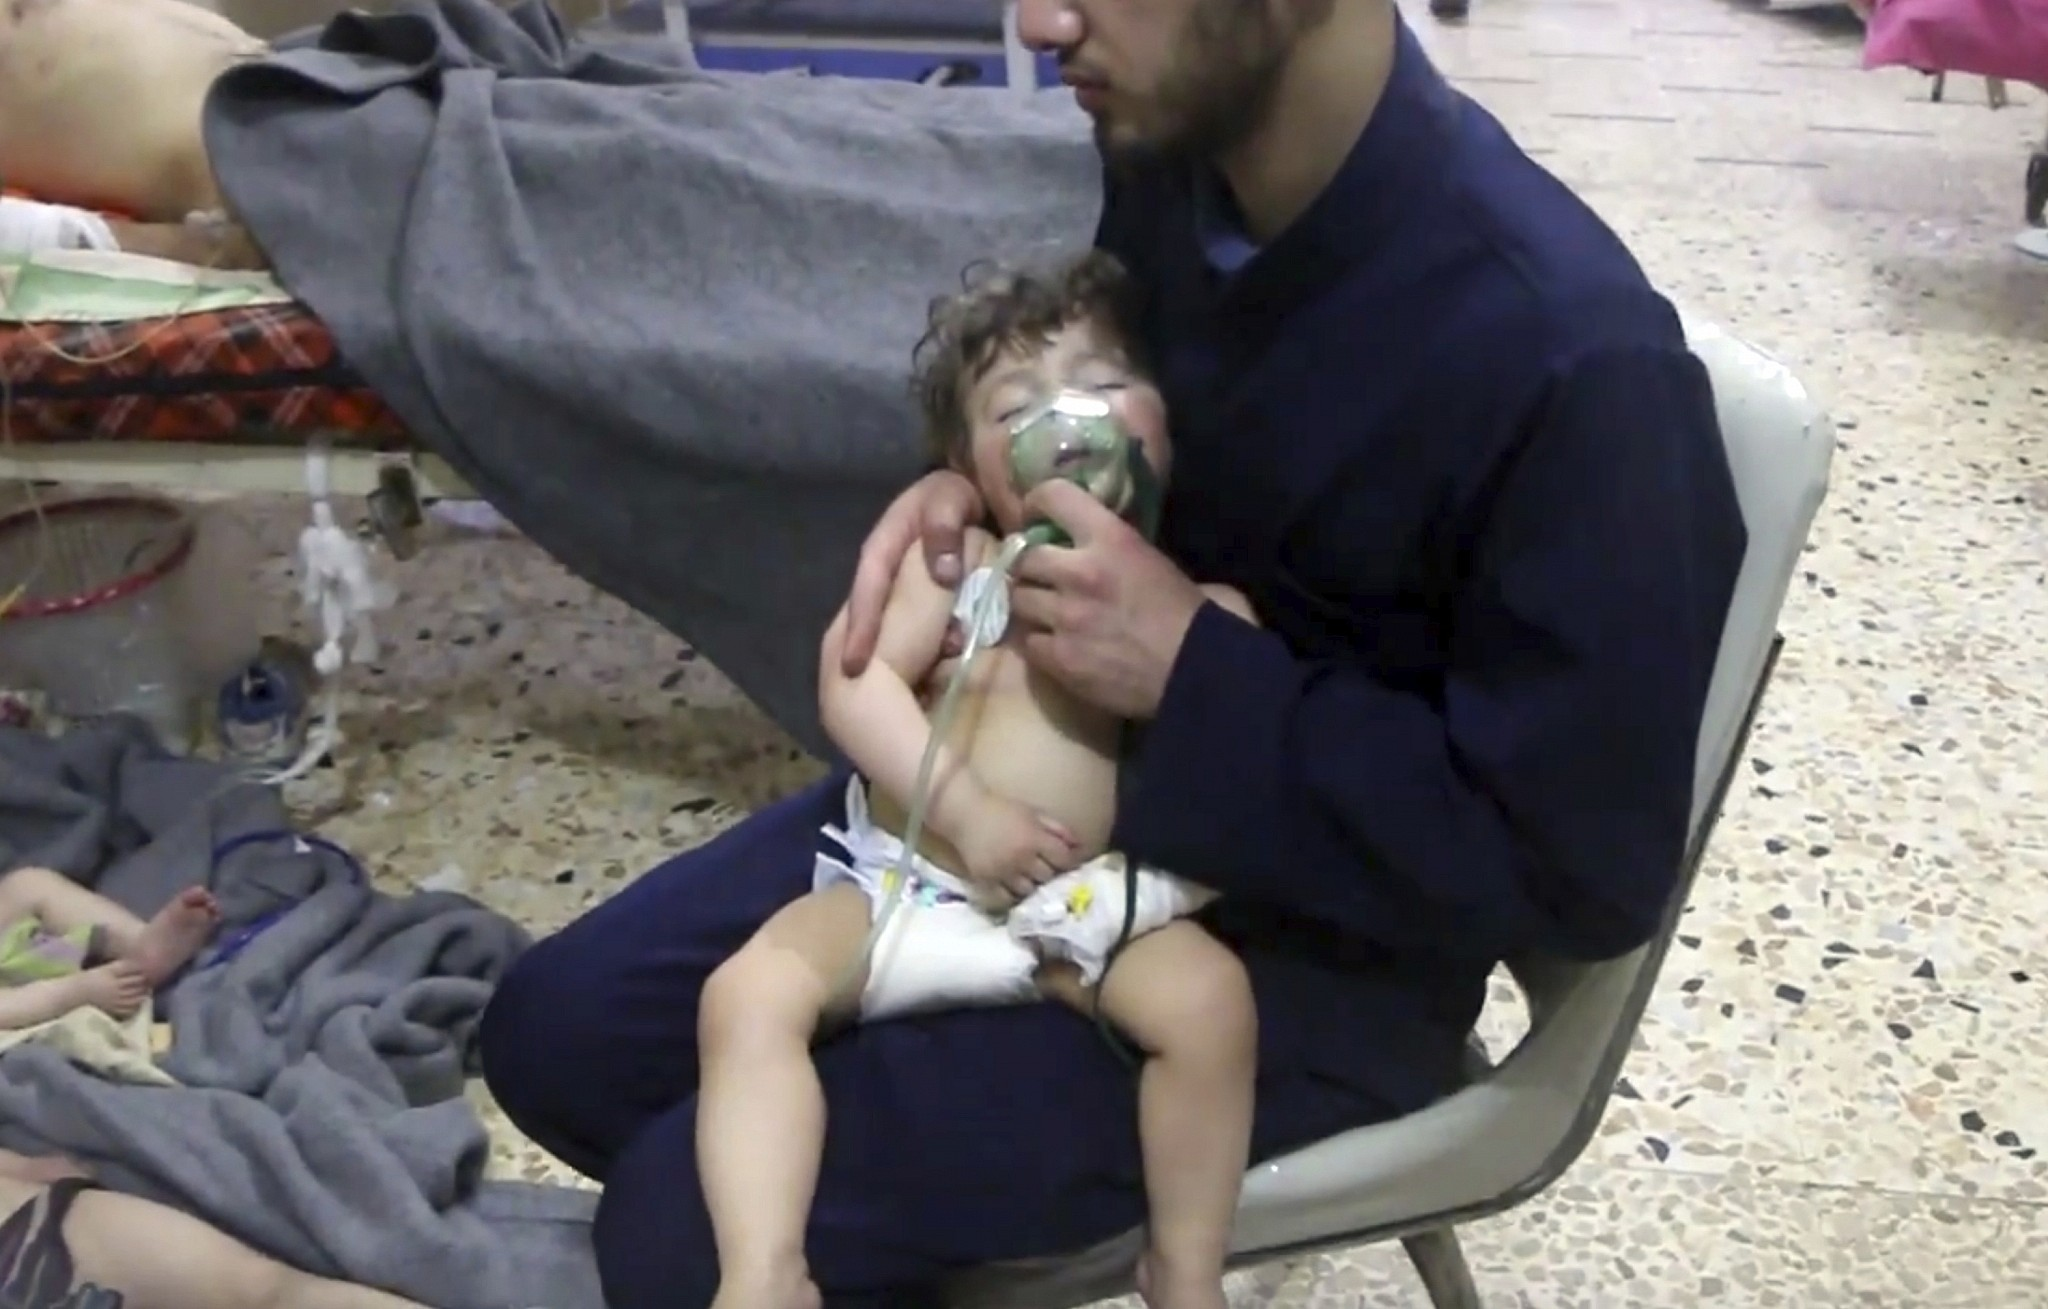 This image shows a medical worker giving toddlers oxygen through respirators following an alleged poison gas attack in the opposition-held town of Douma in eastern Ghouta near Damascus Syria Sunday